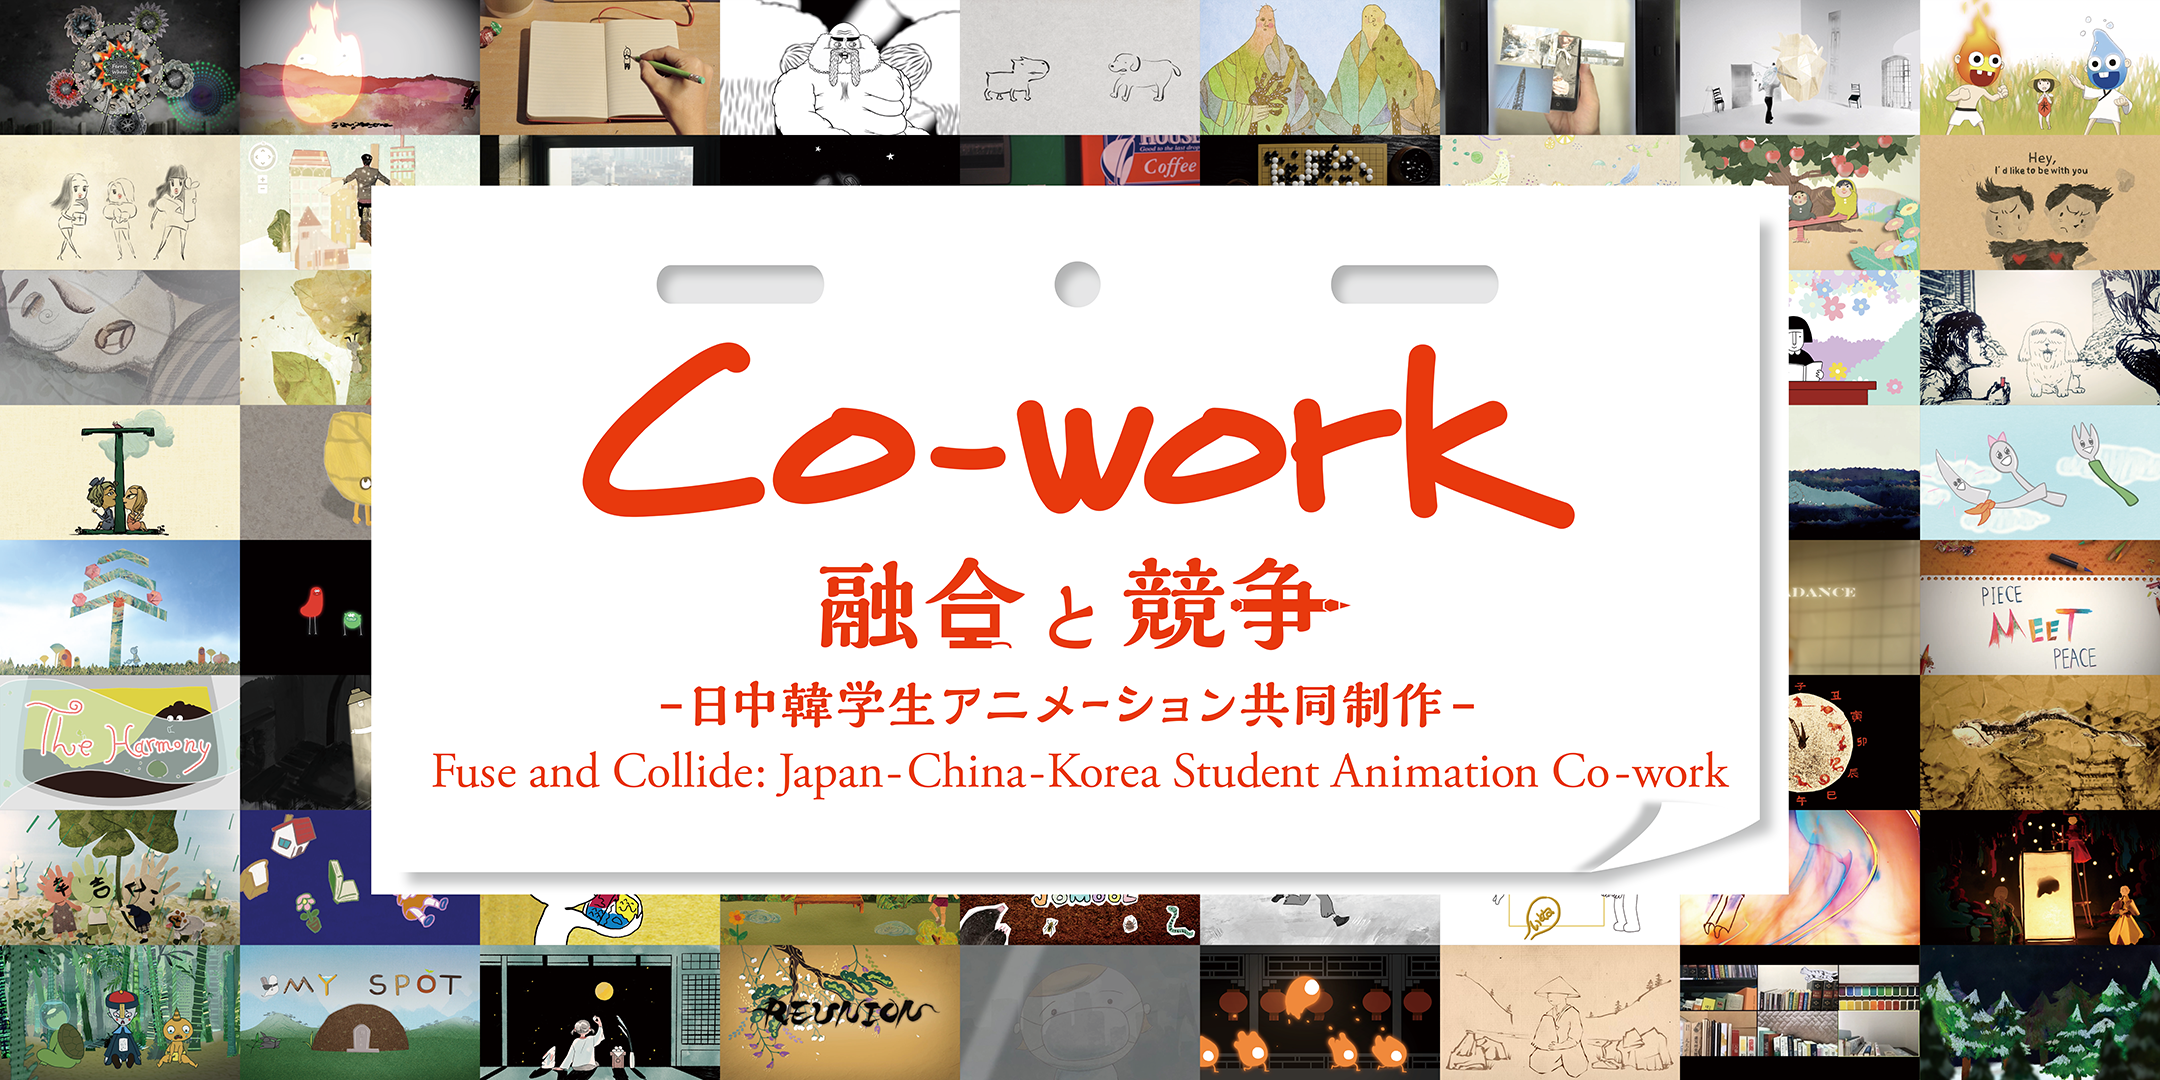 Co-work 融合と競争 −日中韓学生アニメーション共同制作− / Fuse and Collide: Japan-China-Korea Student Animation Co-work